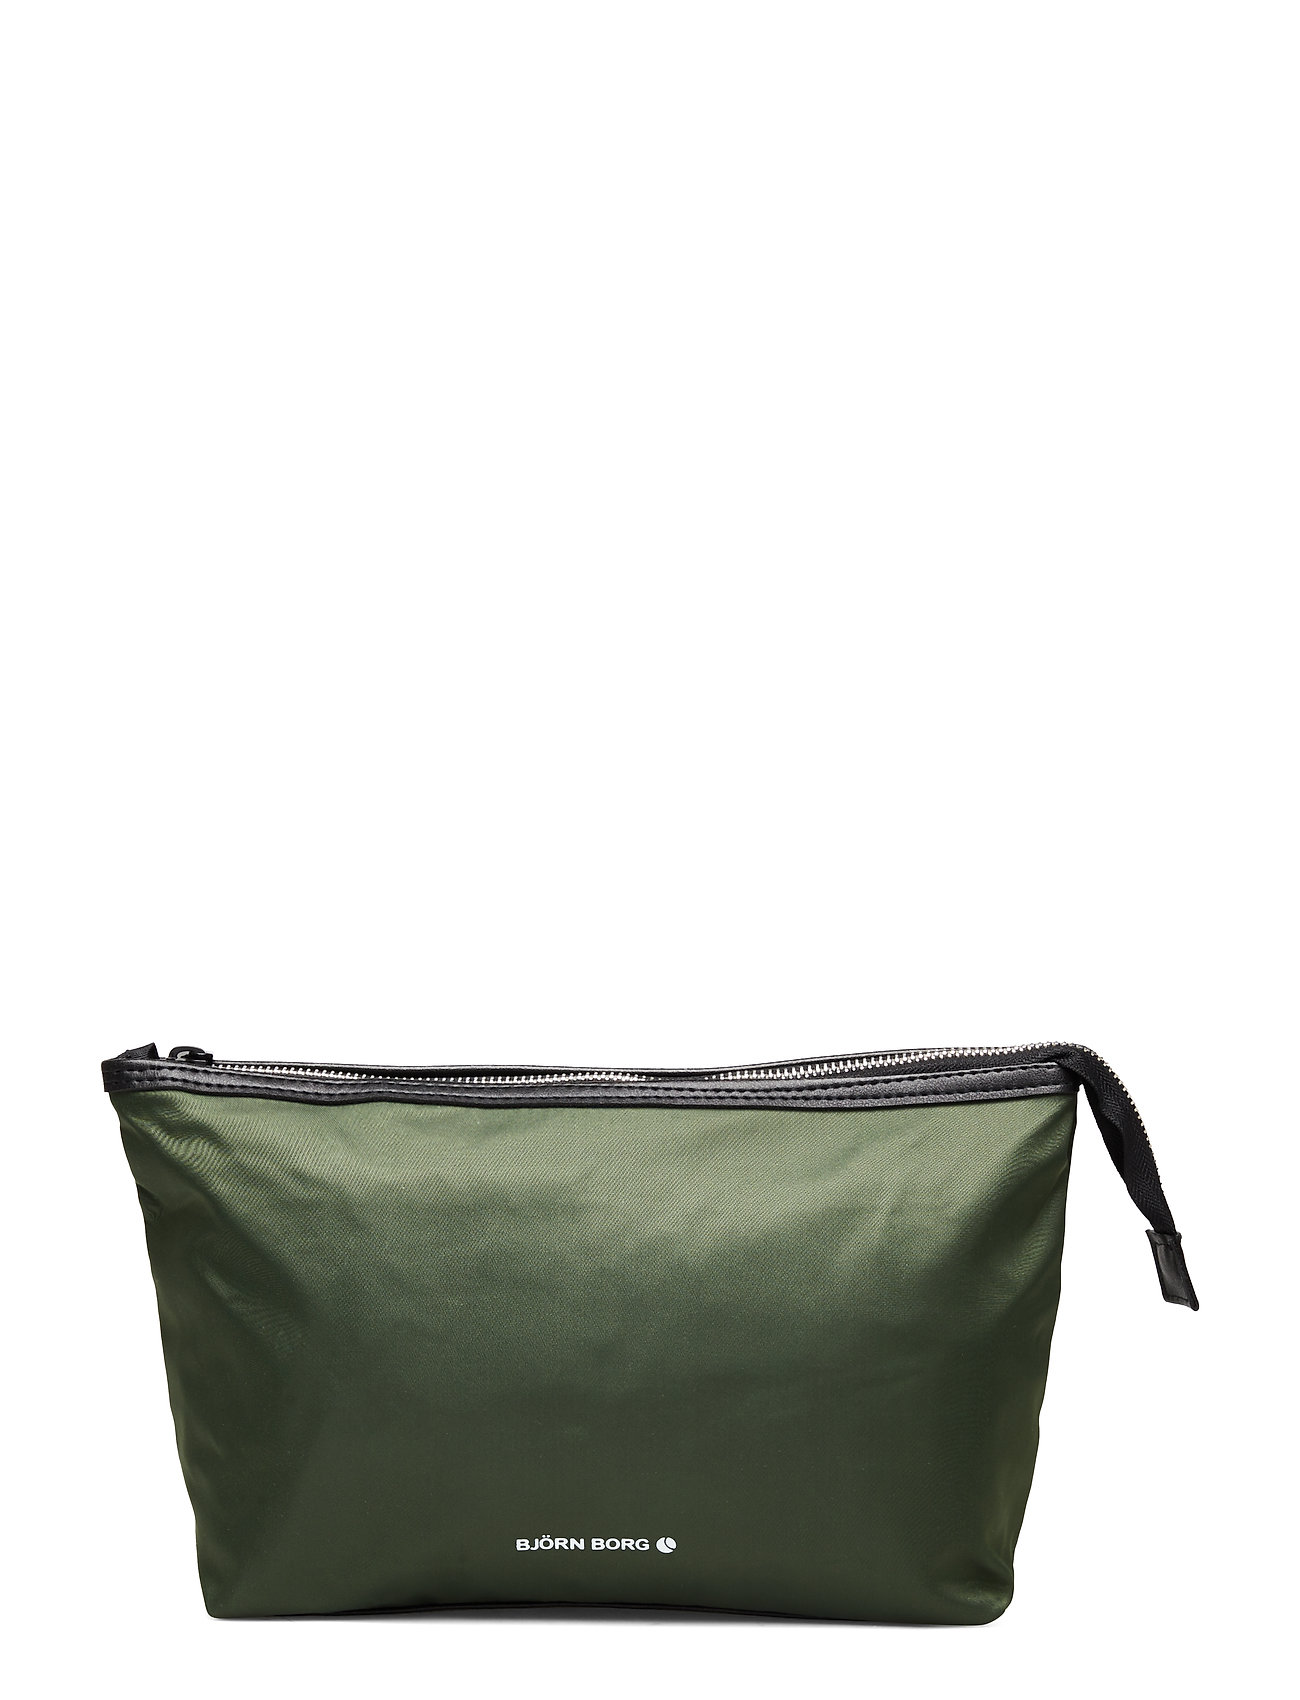 Björn Borg Bags MARCY - ARMY GREEN